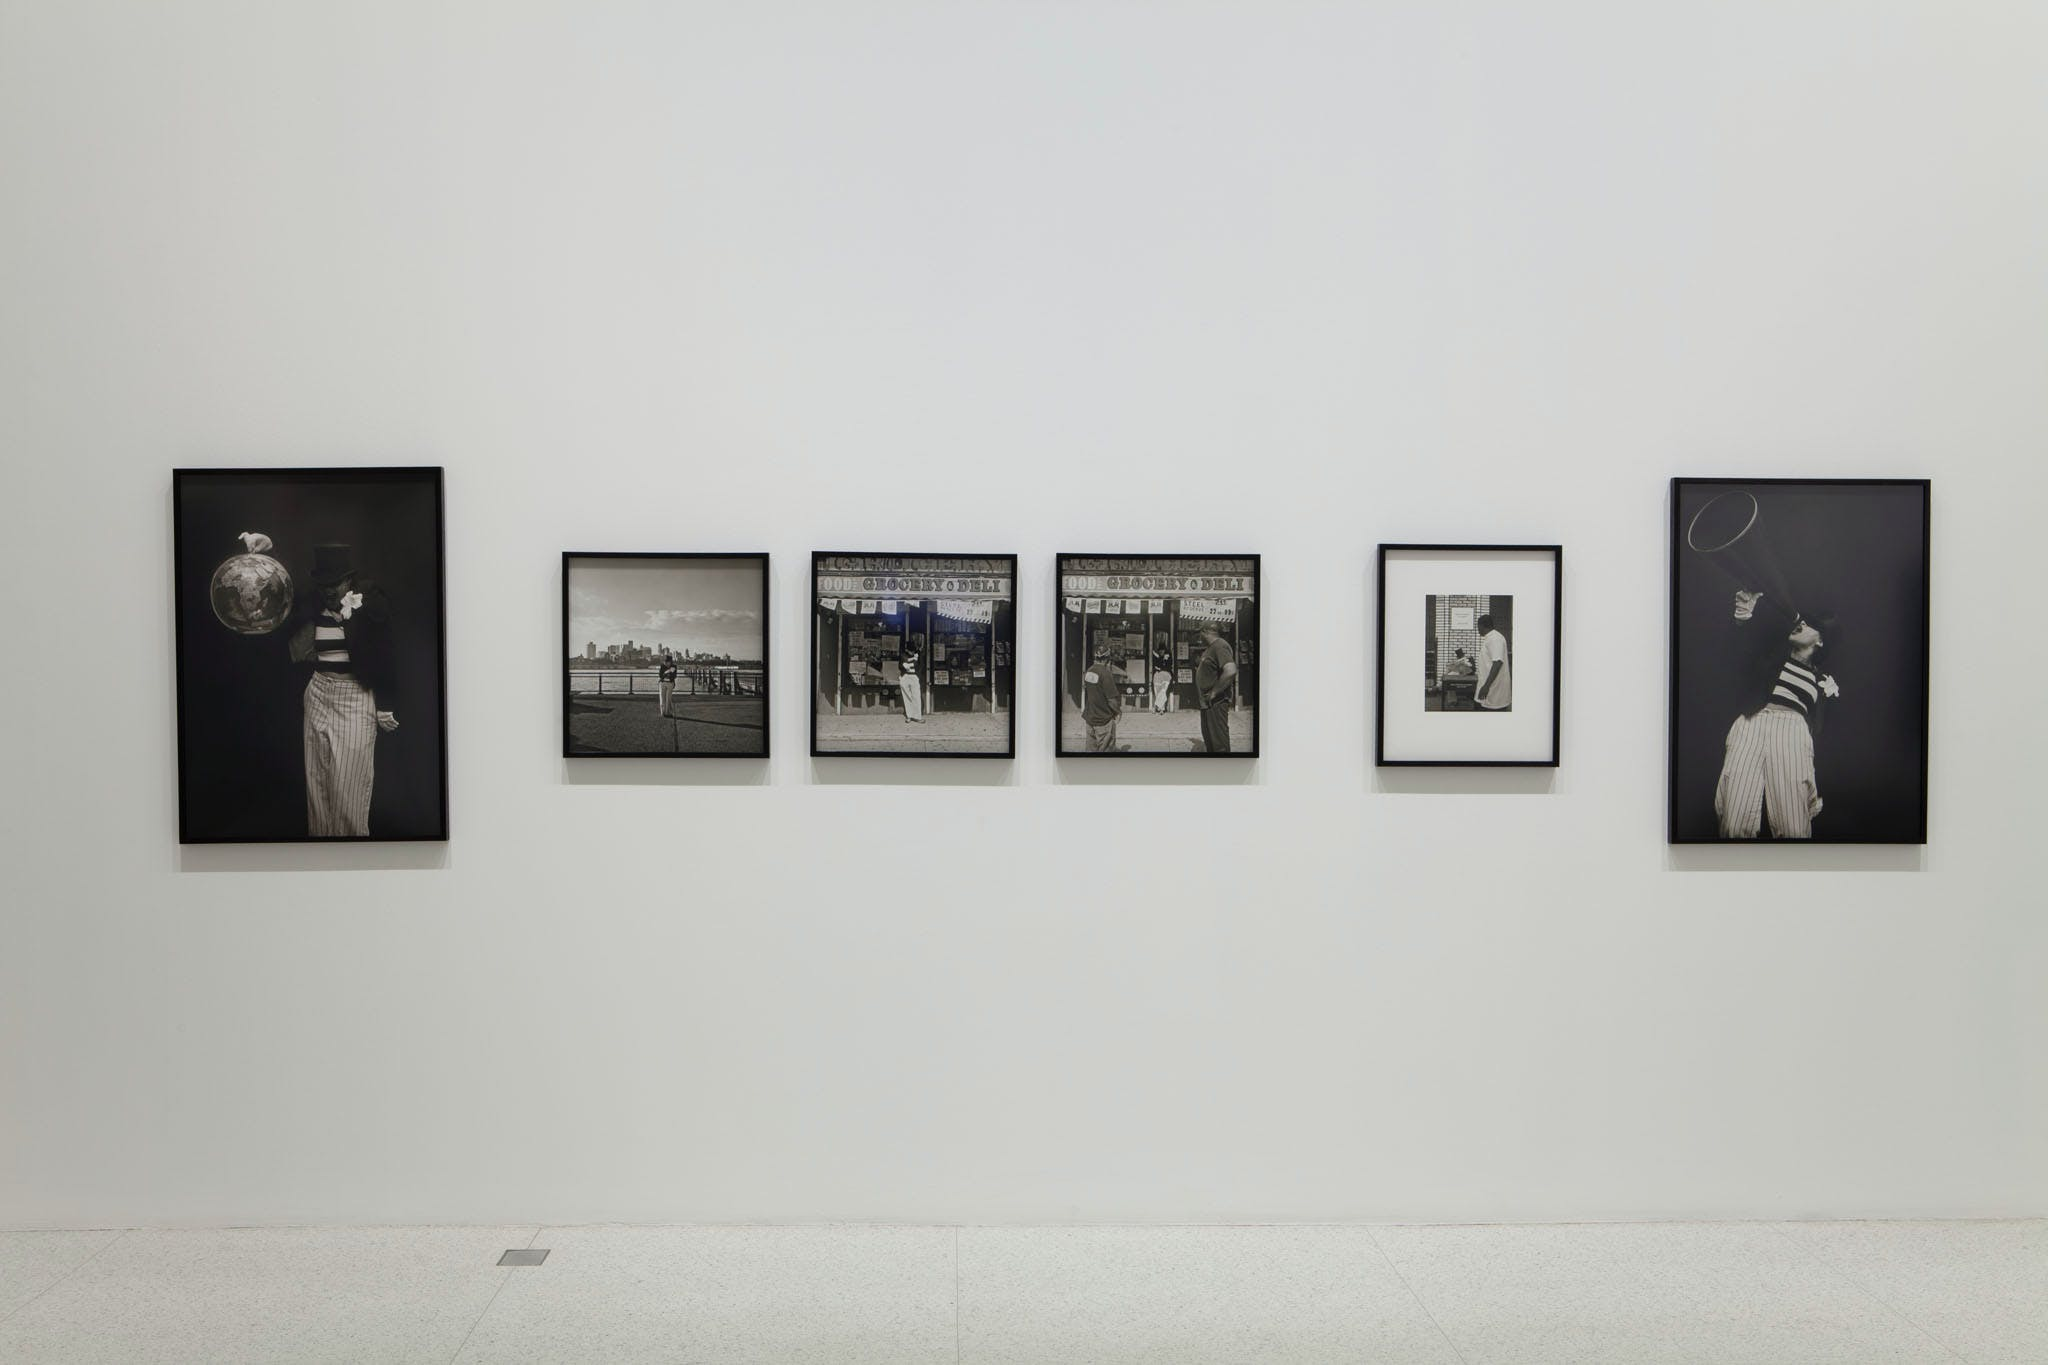 View of the exhibition Radical Presence: Black Performance in Contemporary Art, 2014